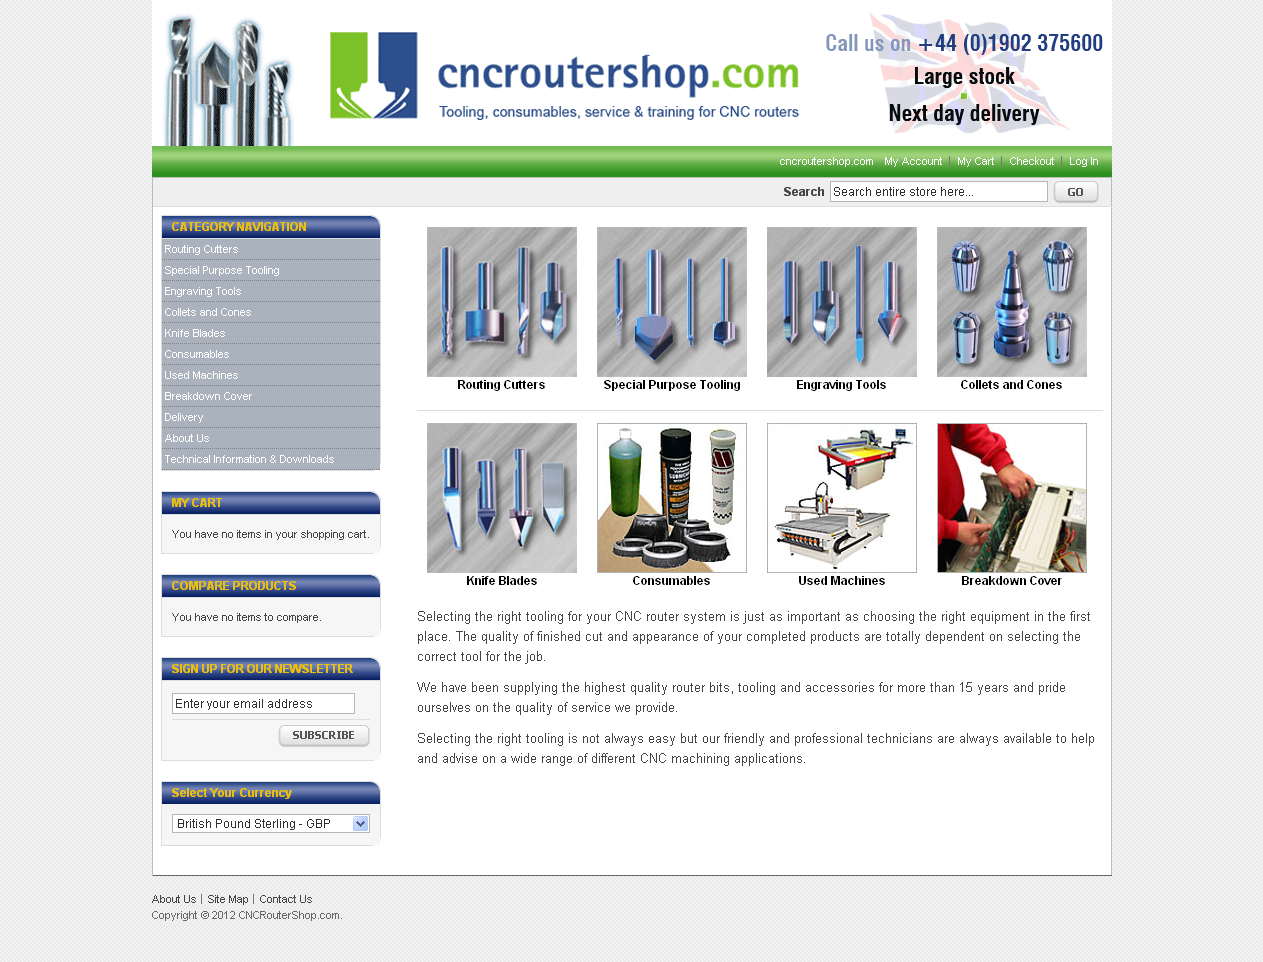 cleartarn website - CNC Router Shop